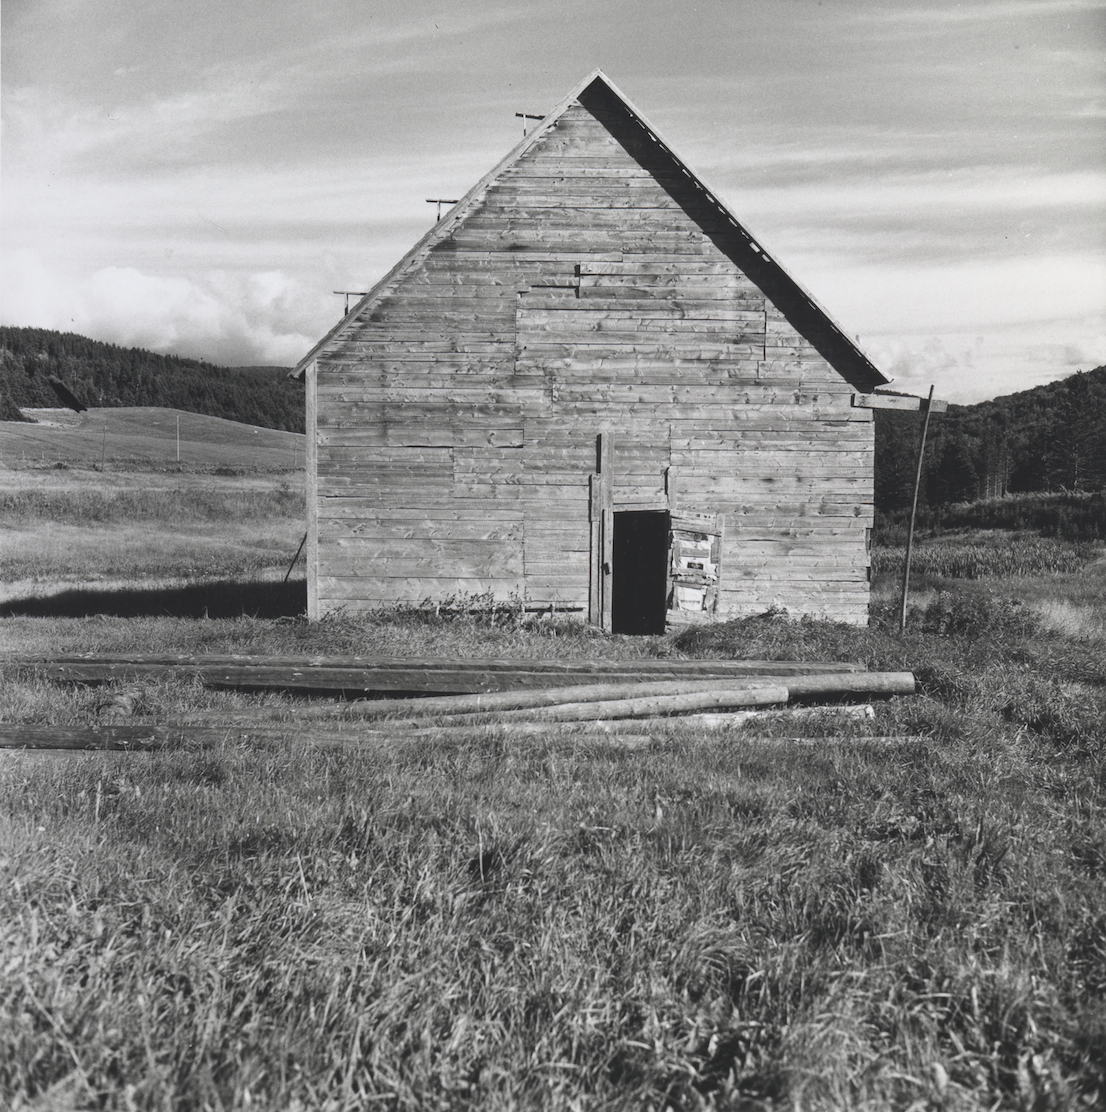 Walker Evans, Barn Nova Scotia, 1969 – 71. Collection of Clark and Joan Worswick. © Walker Evans Archive, The Metropolitan Museum of Art.